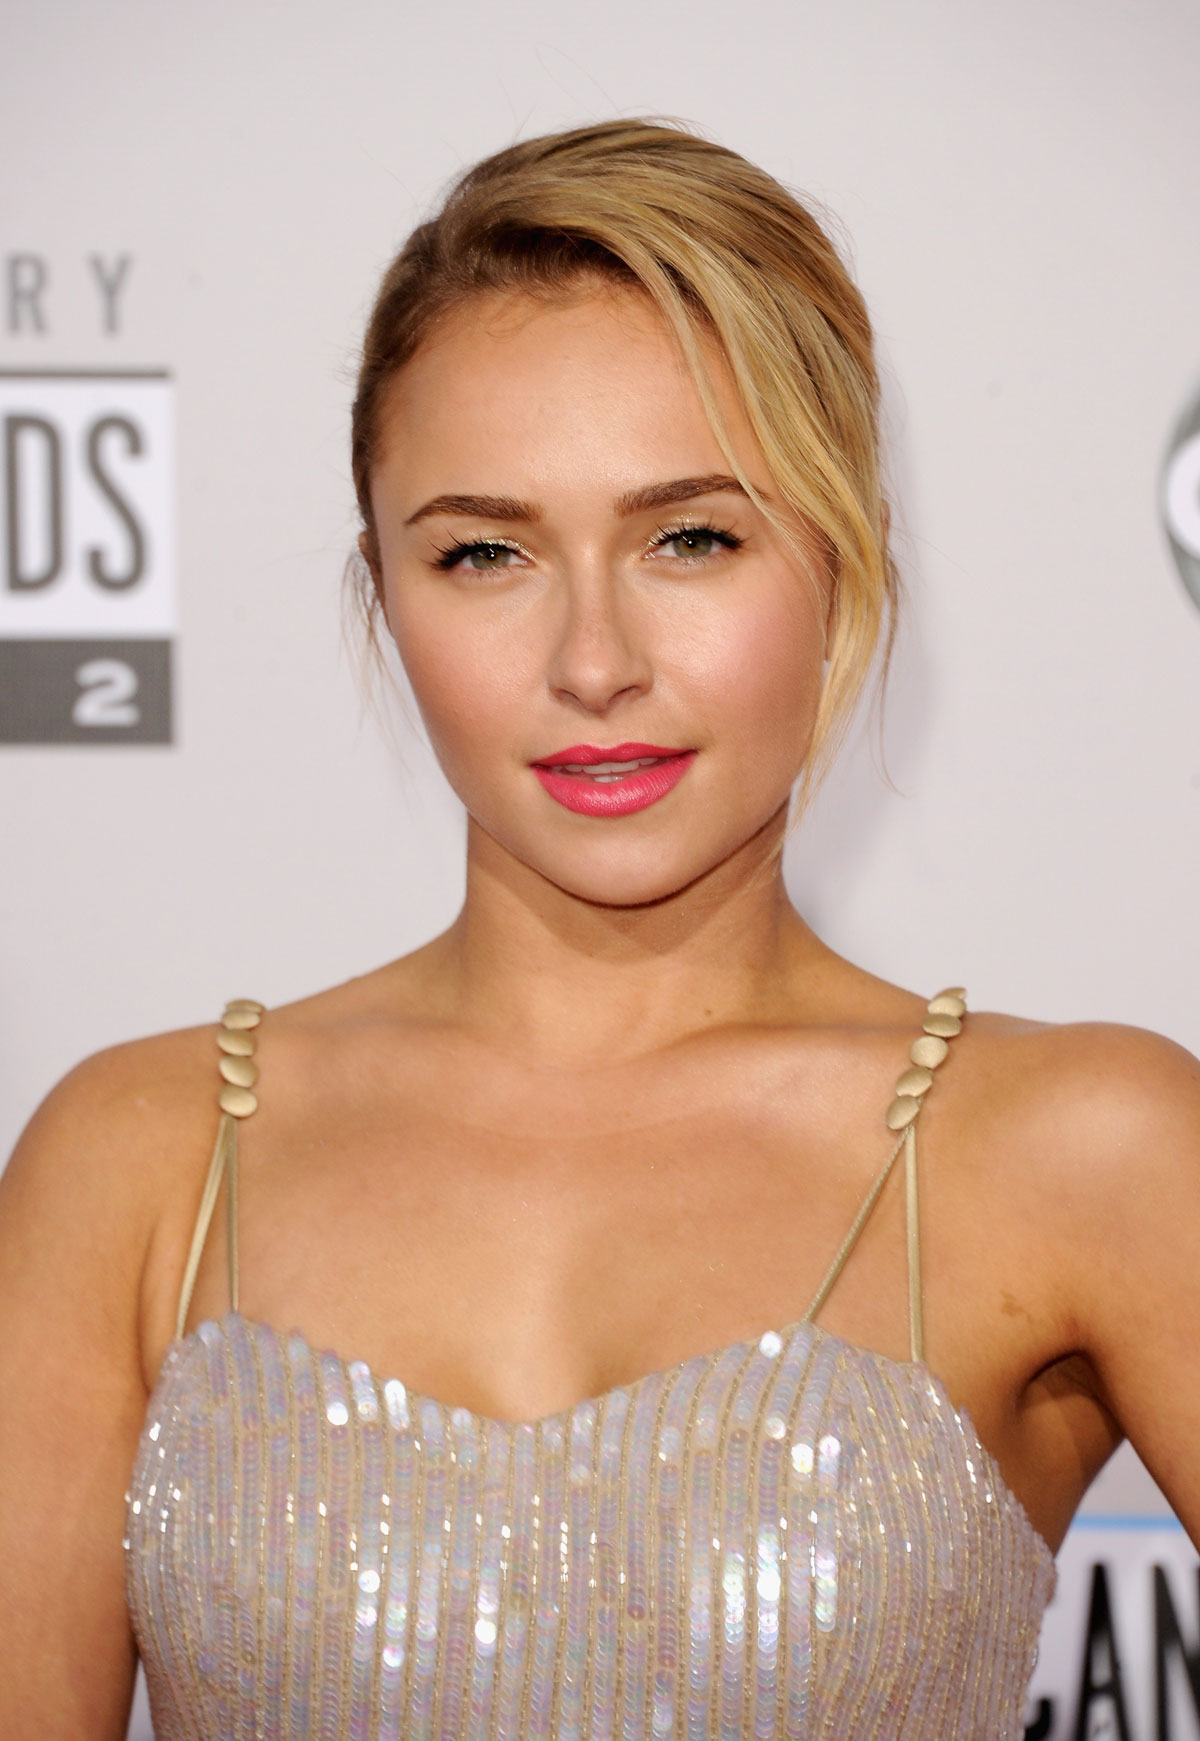 Hayden Panettiere Archives - Page 5 of 10 - HawtCelebs ... Hayden Panettiere